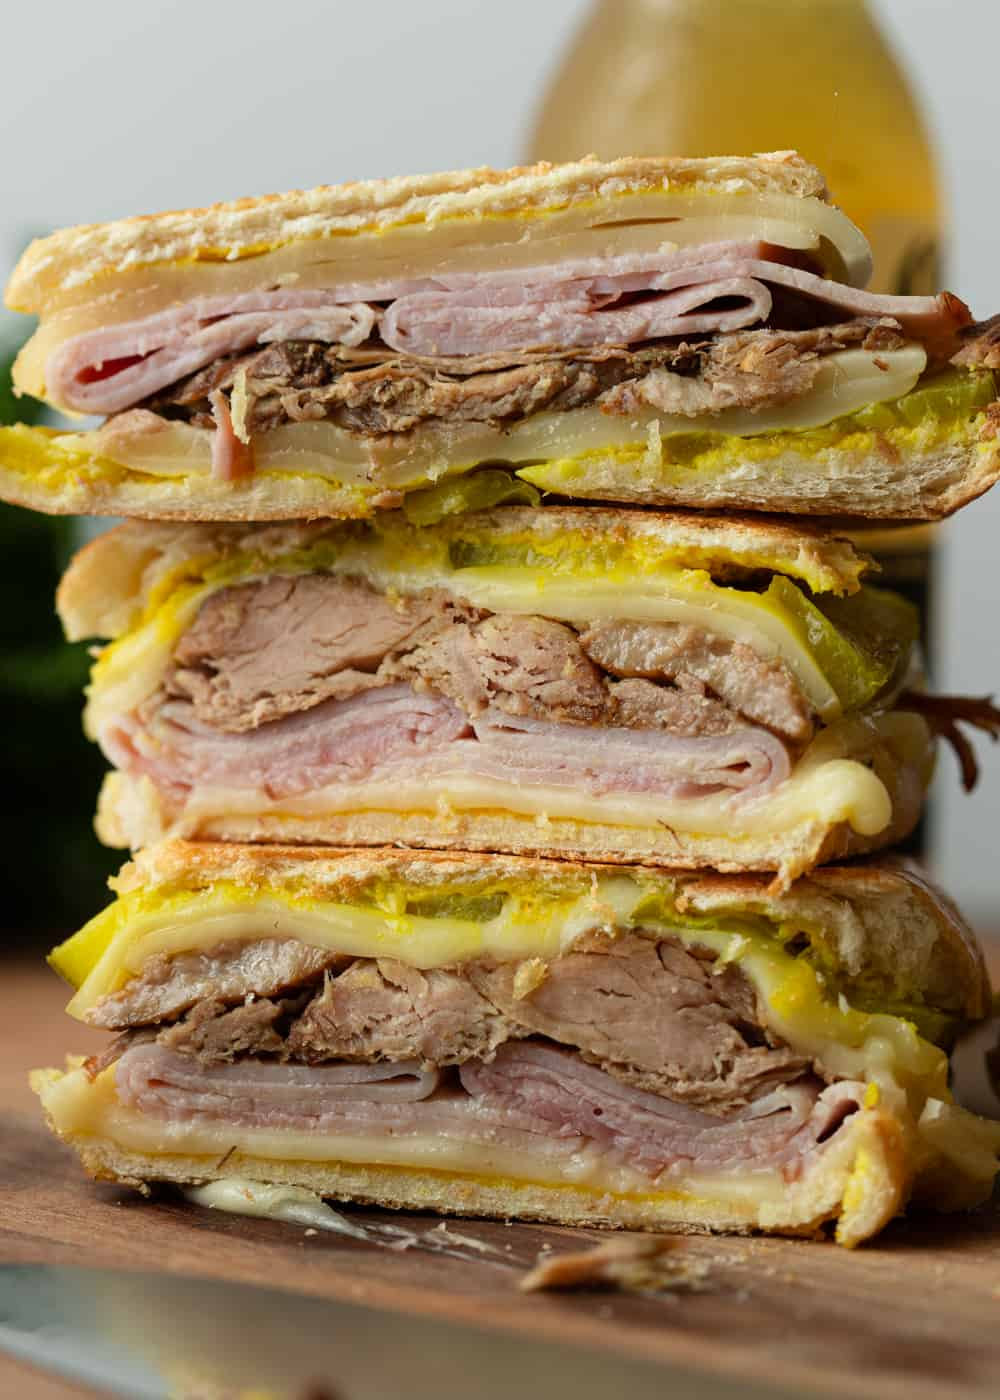 Stacks of Cuban Sandwiches on a cutting board.